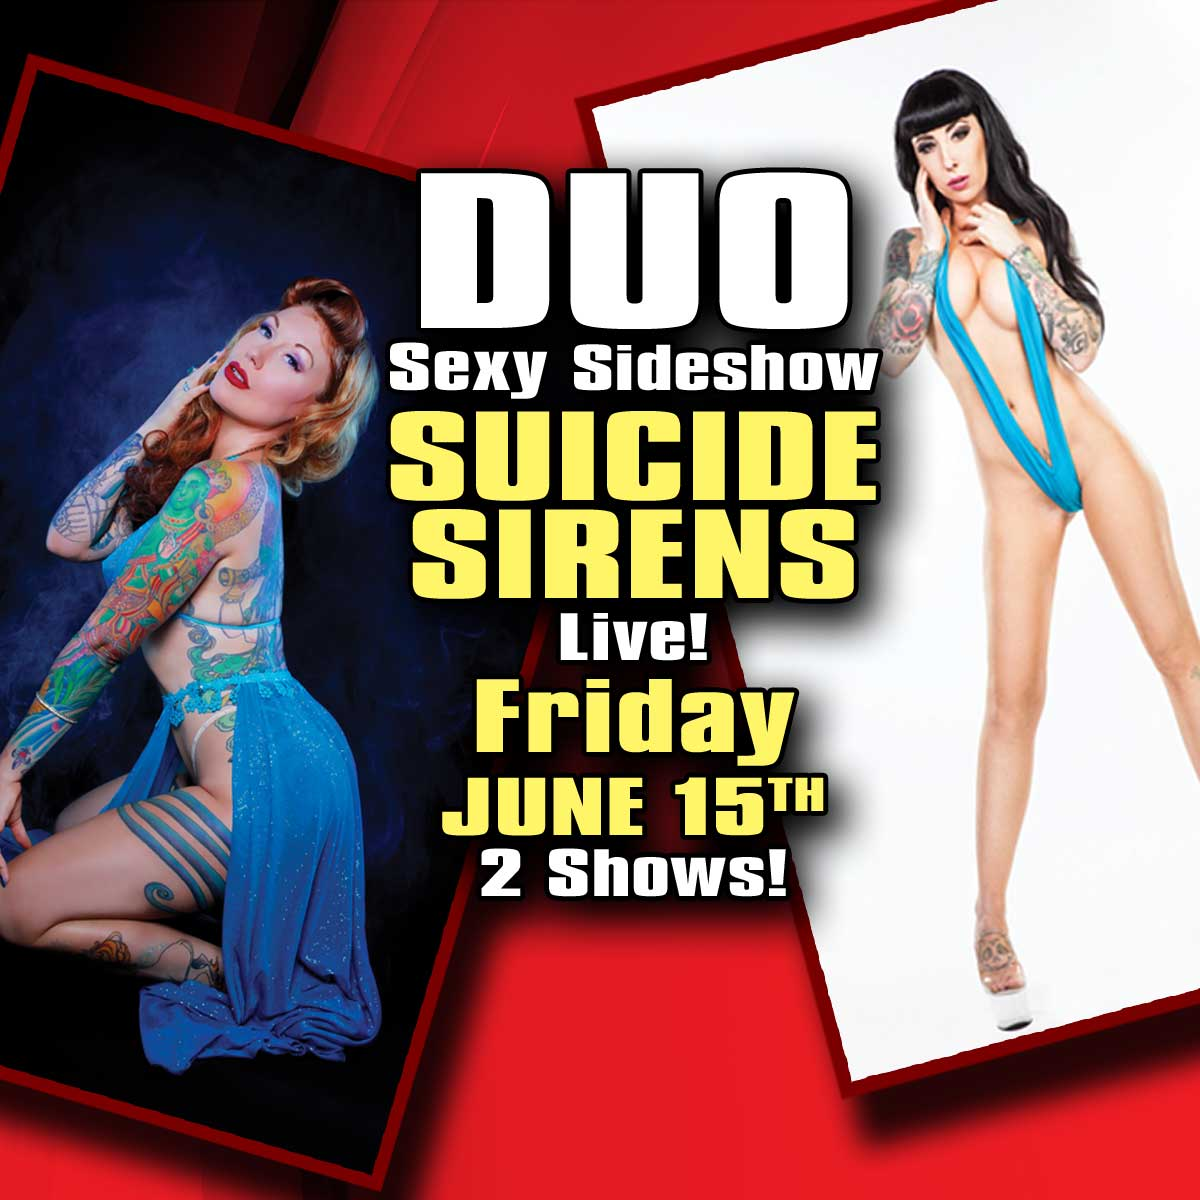 Sexy Duo Sideshow Suicide Sirens | Hollywood Strip Club Connecticut